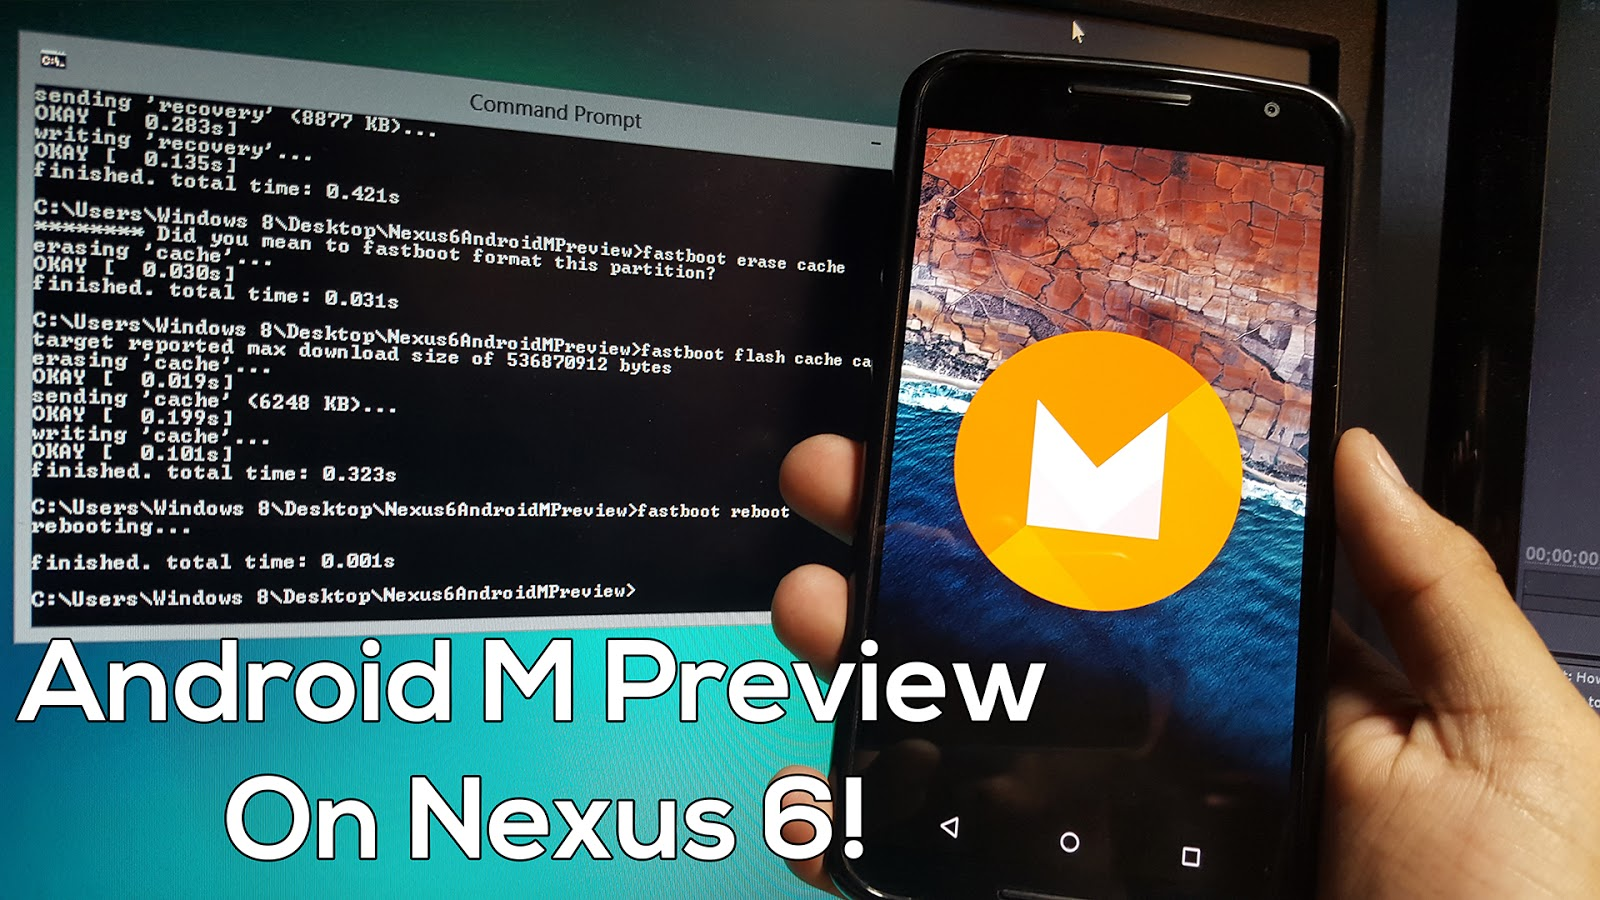 How To Install Android M Preview On Nexus 6! ~ Androidrootz  Source  For Android Rooting, Roms, Tricks And More!